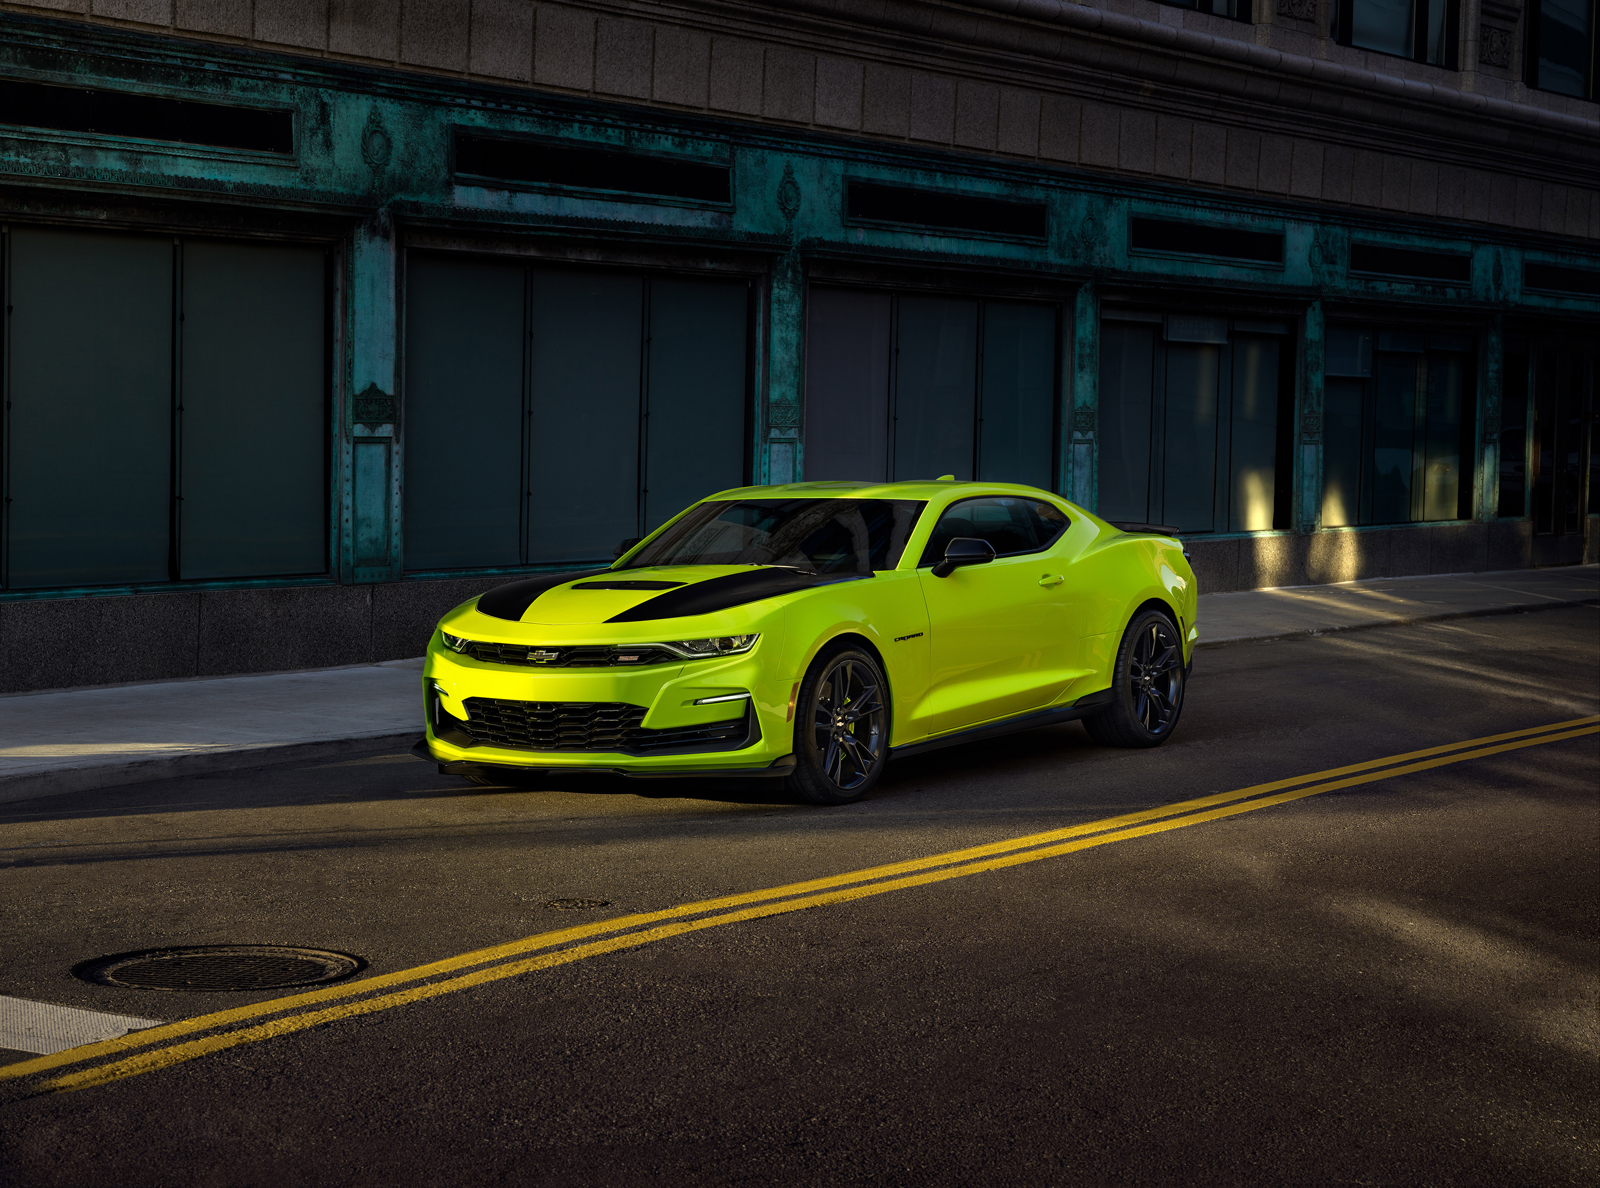 2019 Chevrolet Camaro Offered in New Shock Yellow Color ...